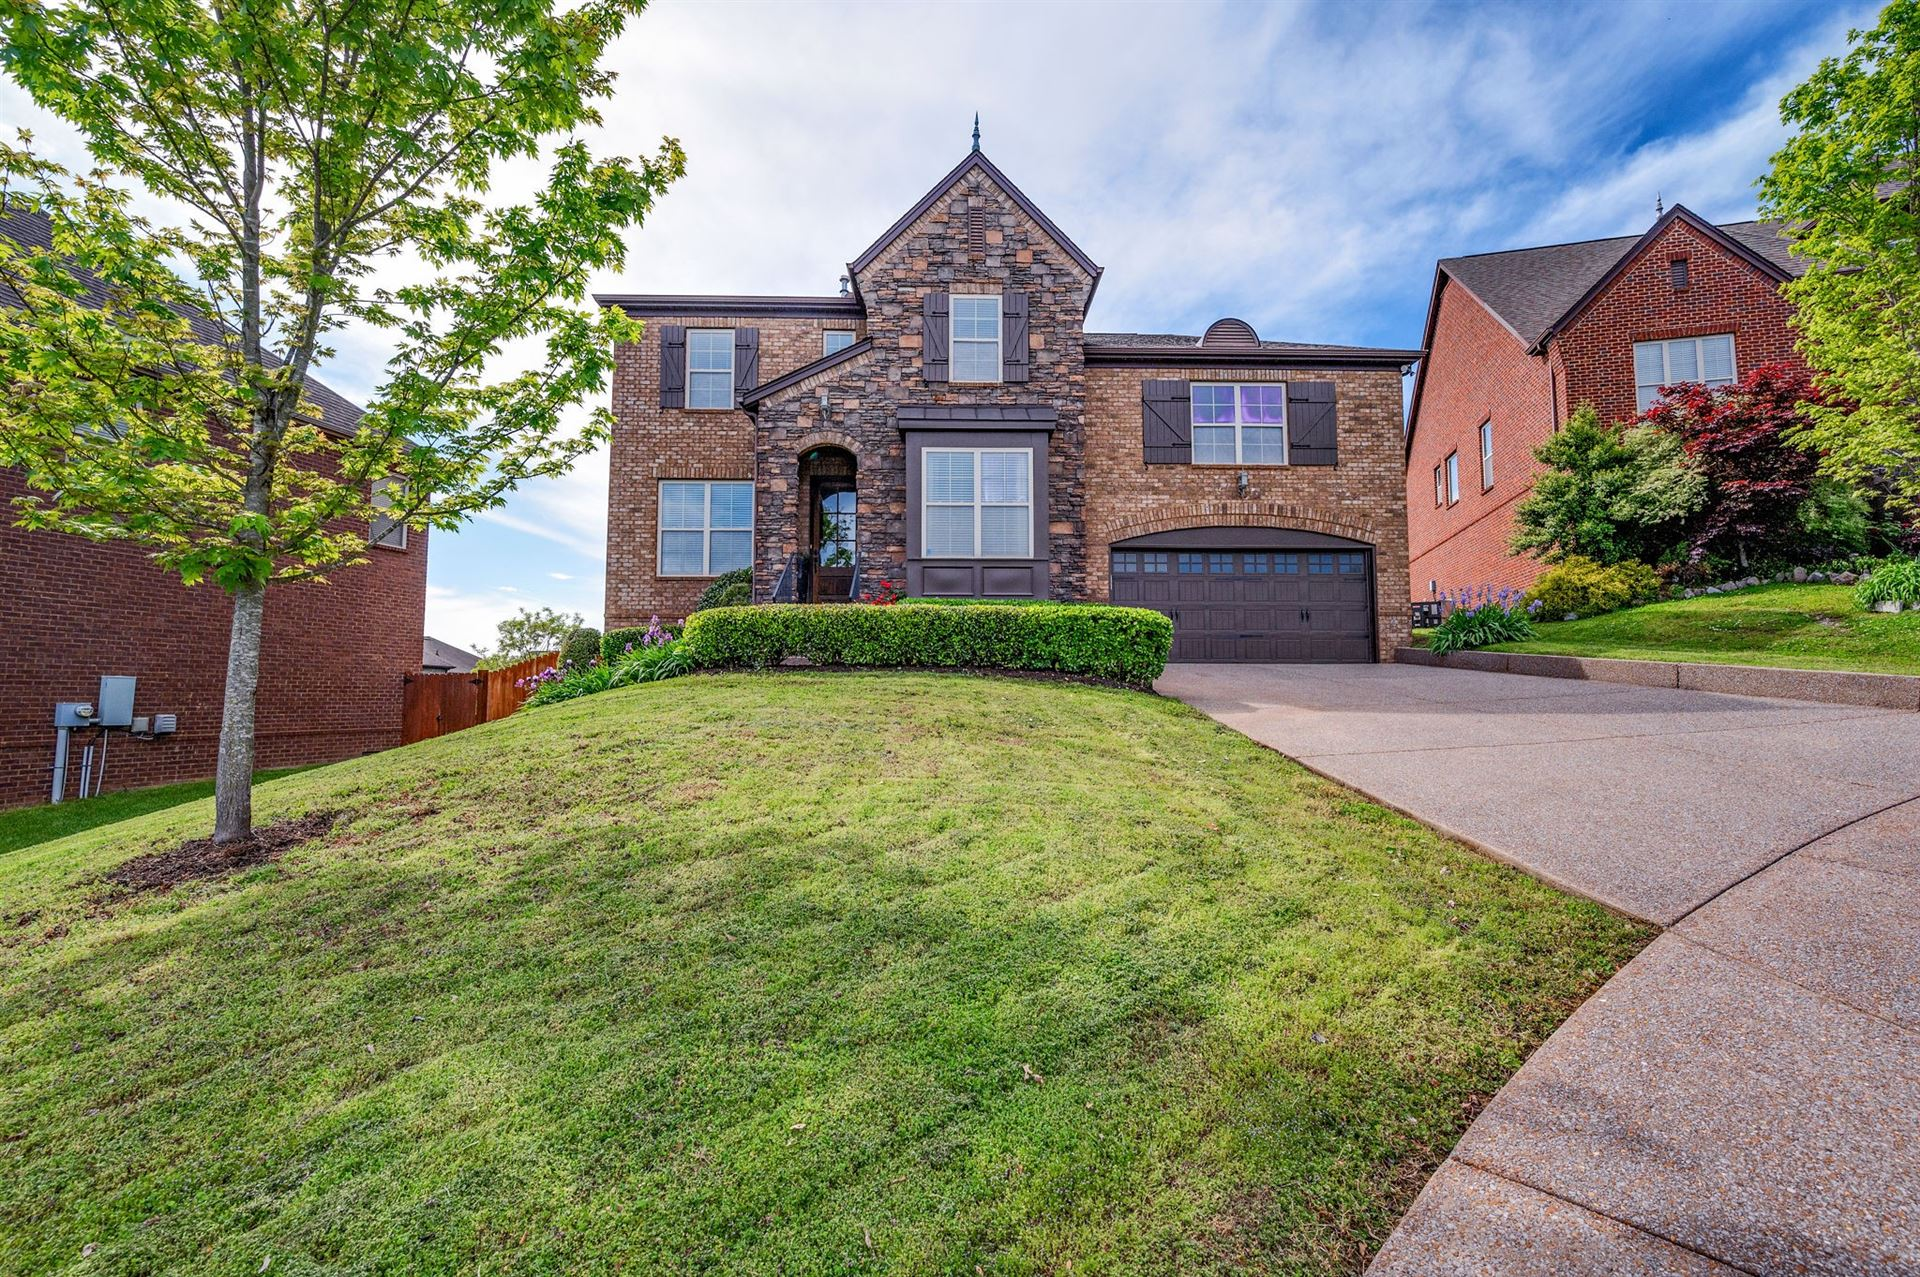 Photo of 4409 Birdseye Ct, Hermitage, TN 37076 (MLS # 2144649)